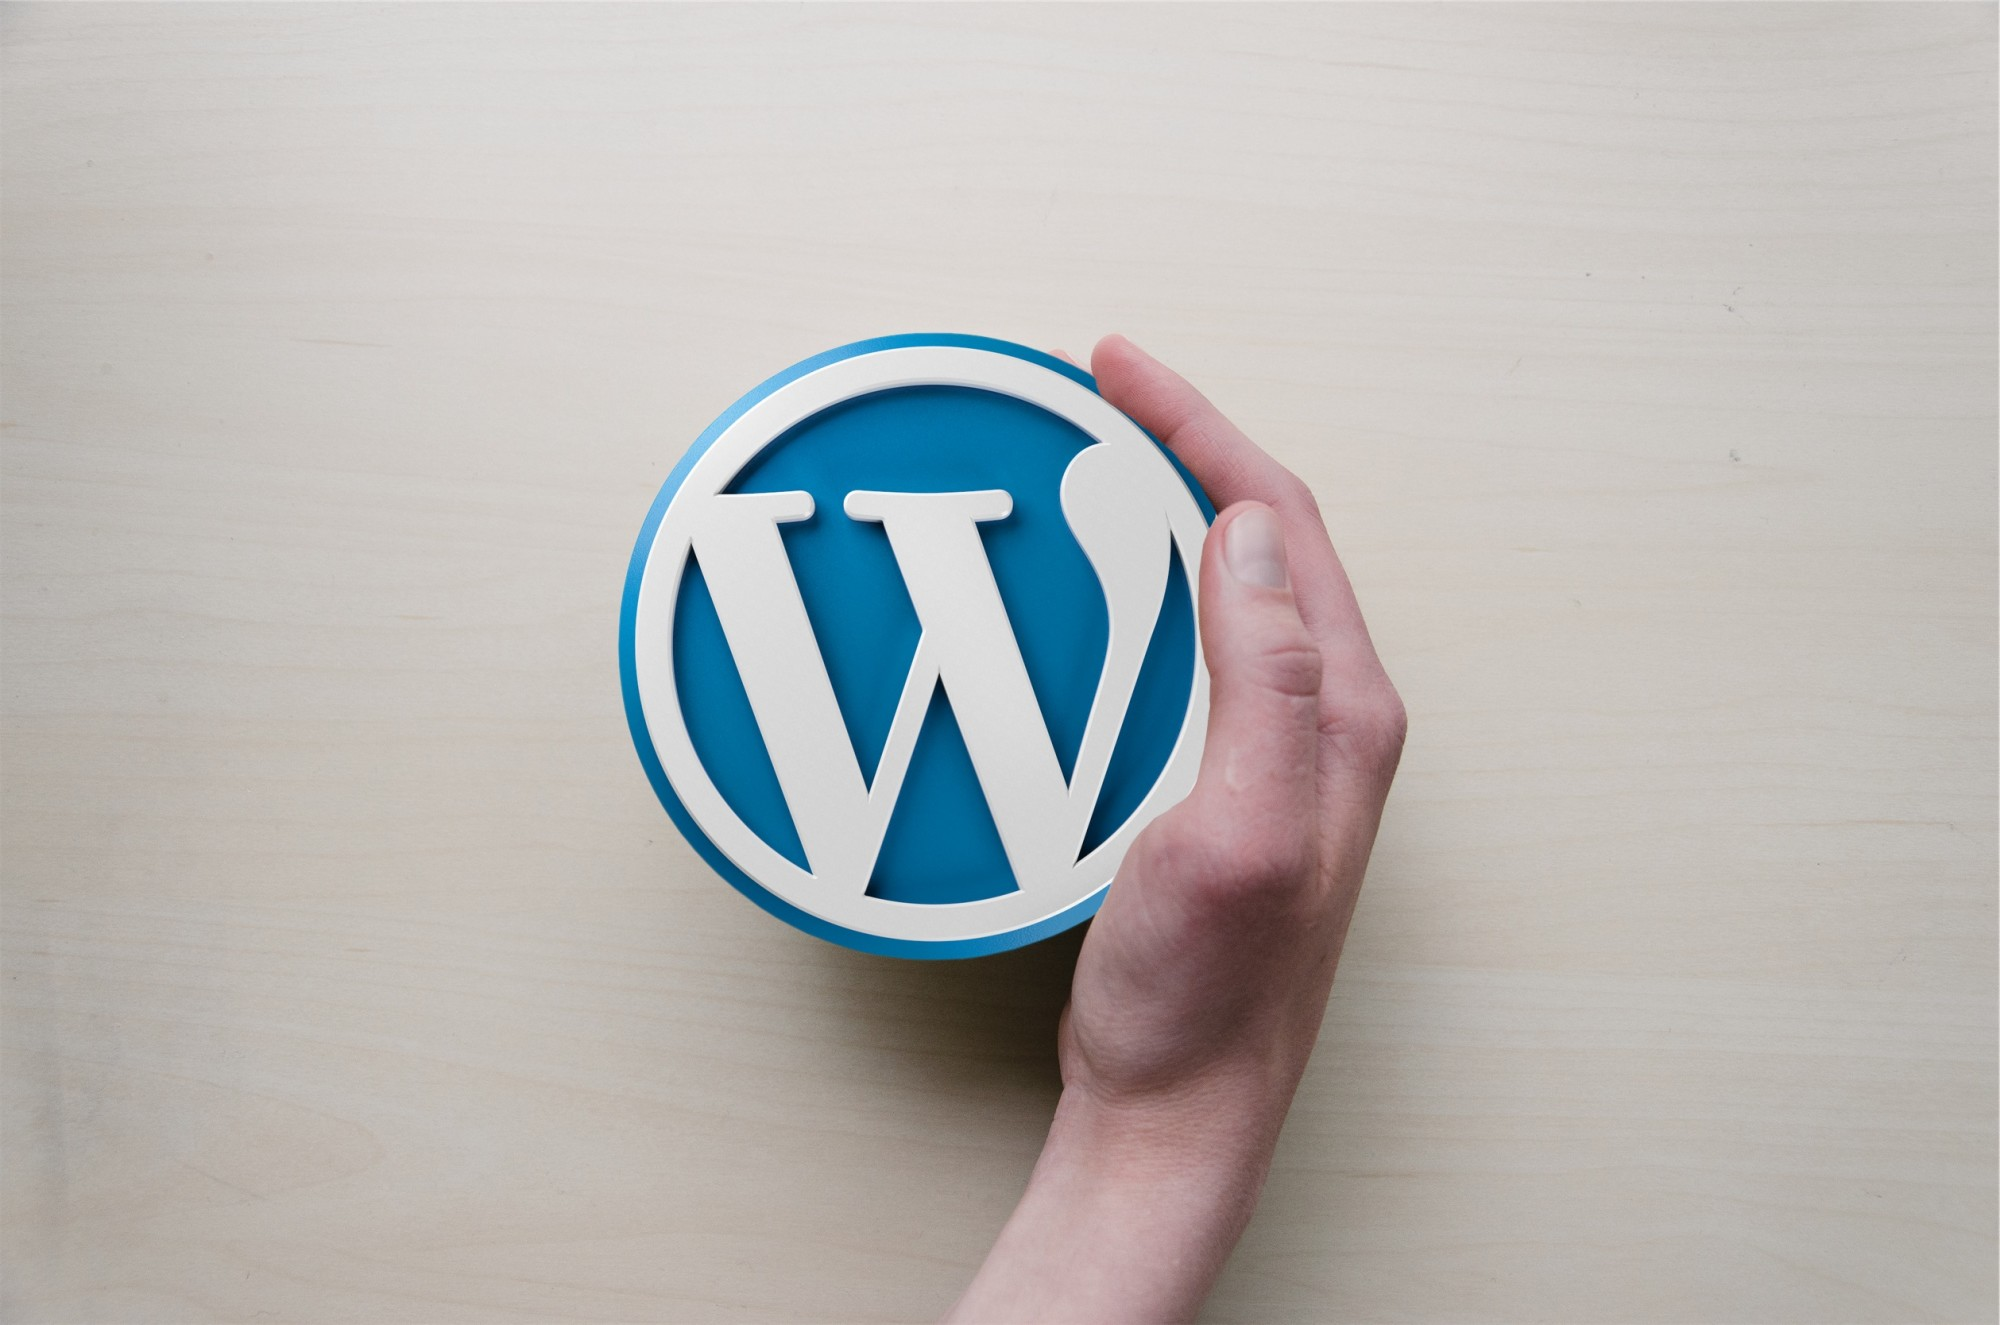 Hardening WordPress: 5 Tips to Protect Your WP Site